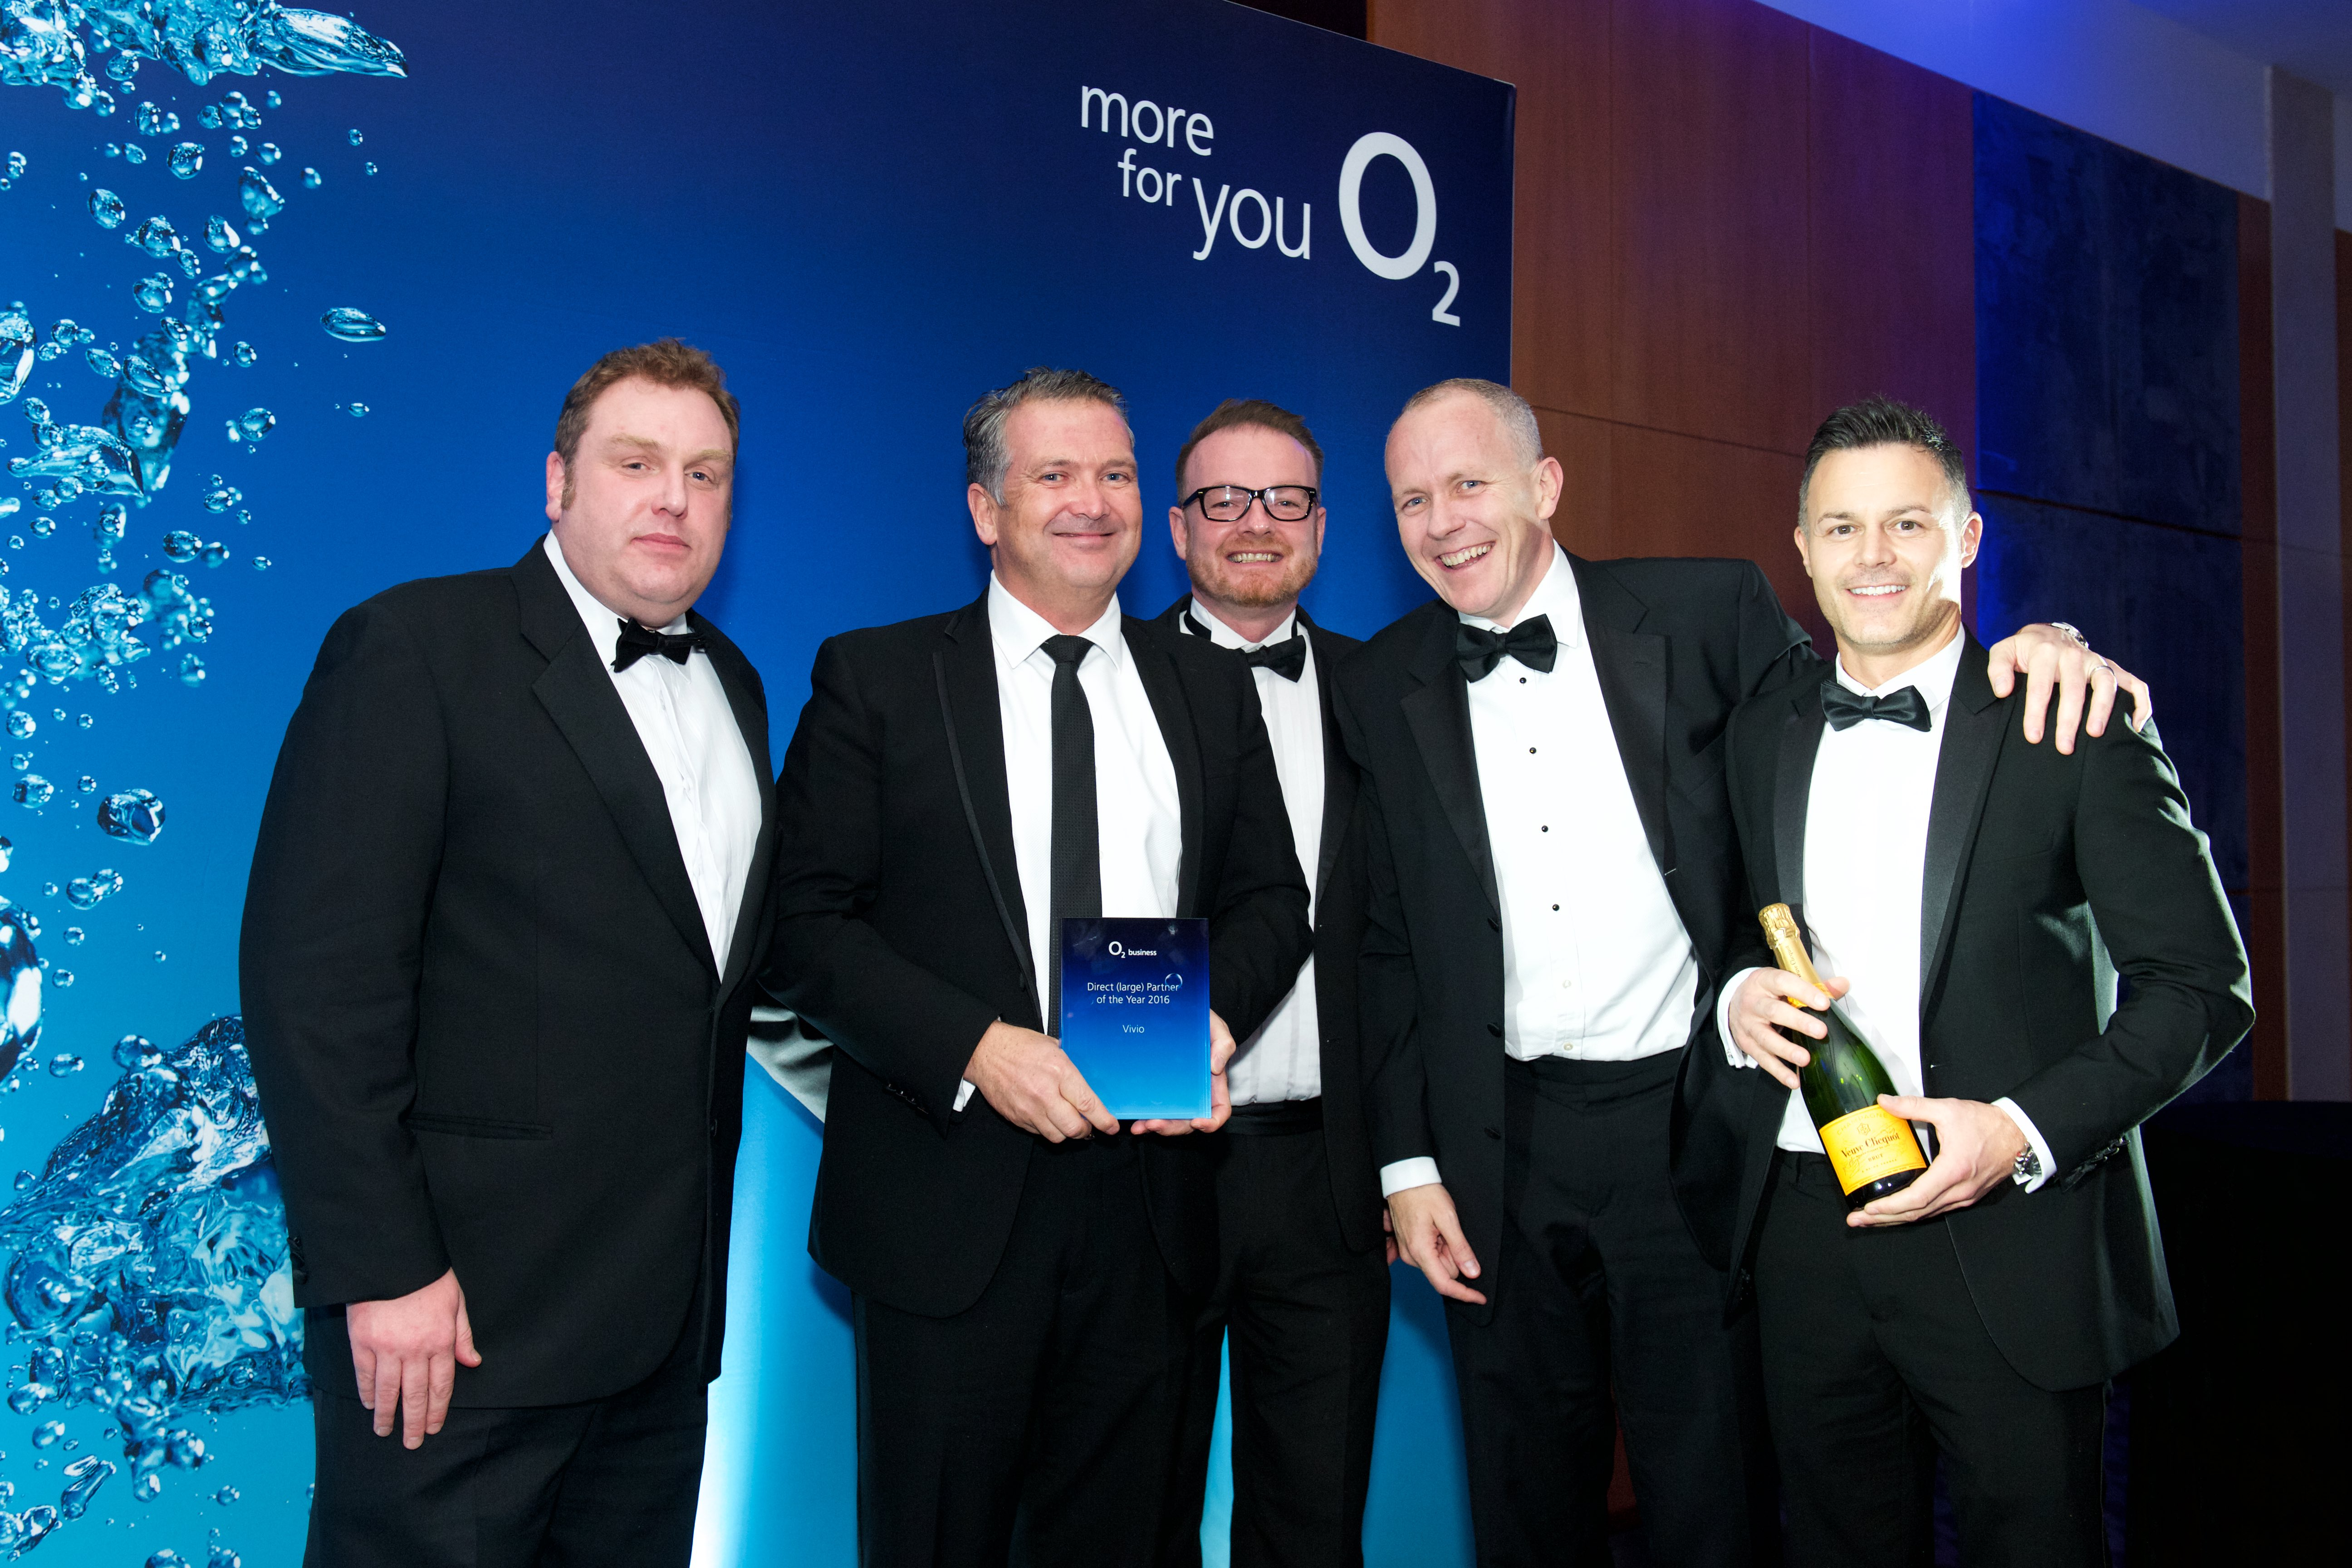 Pinned Story - Vivio awarded O2 Partner of the Year 2016/17 for the second year running!